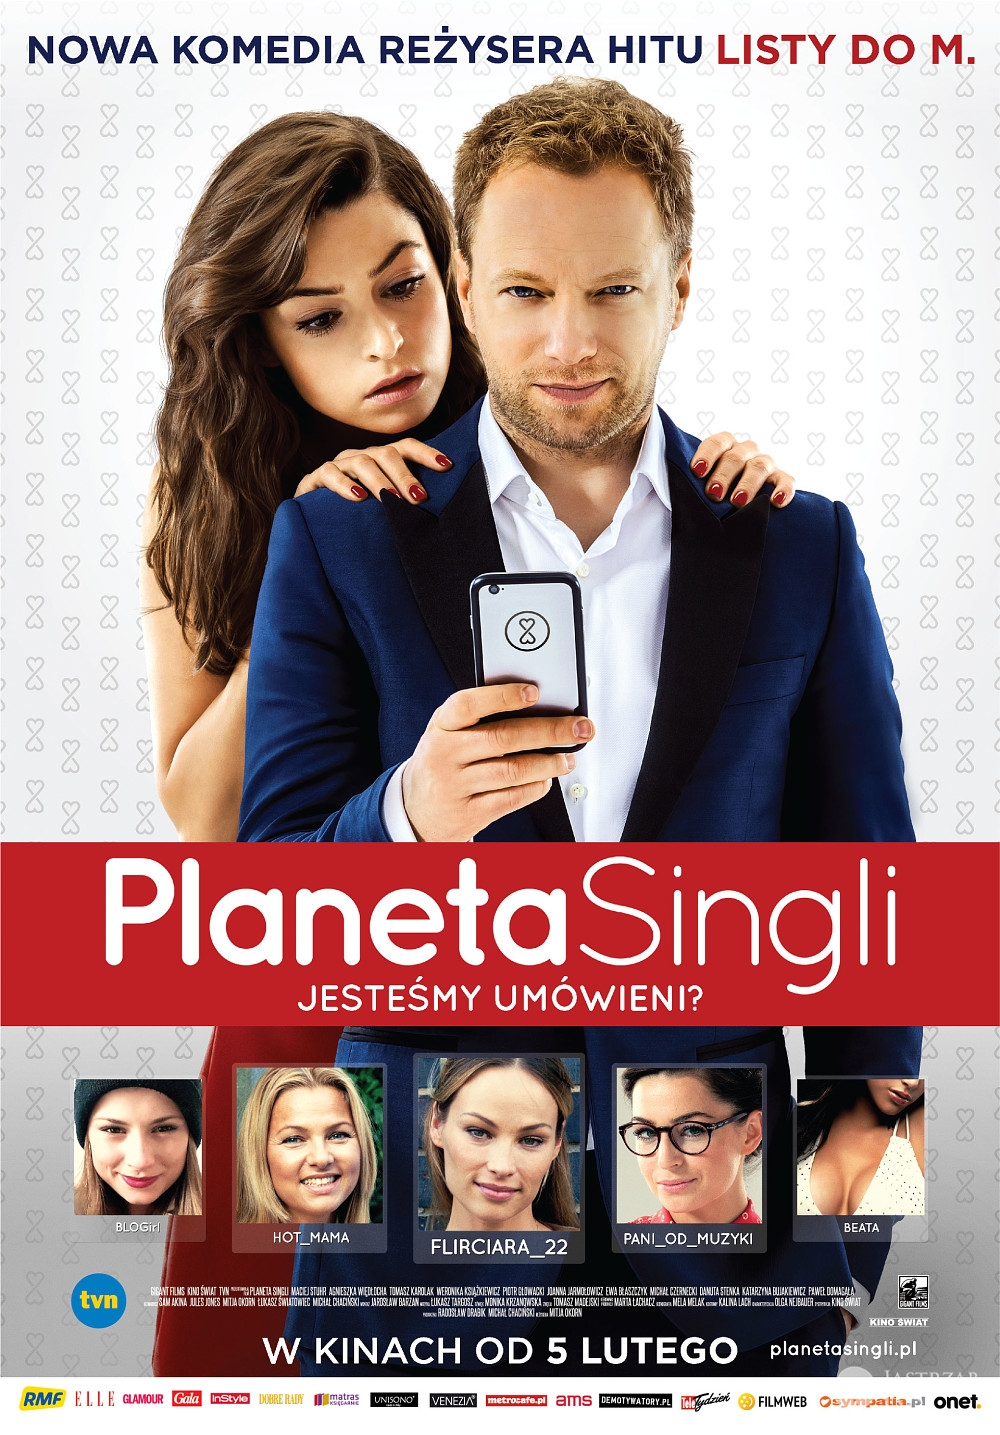 Planeta Singli w Hollywood